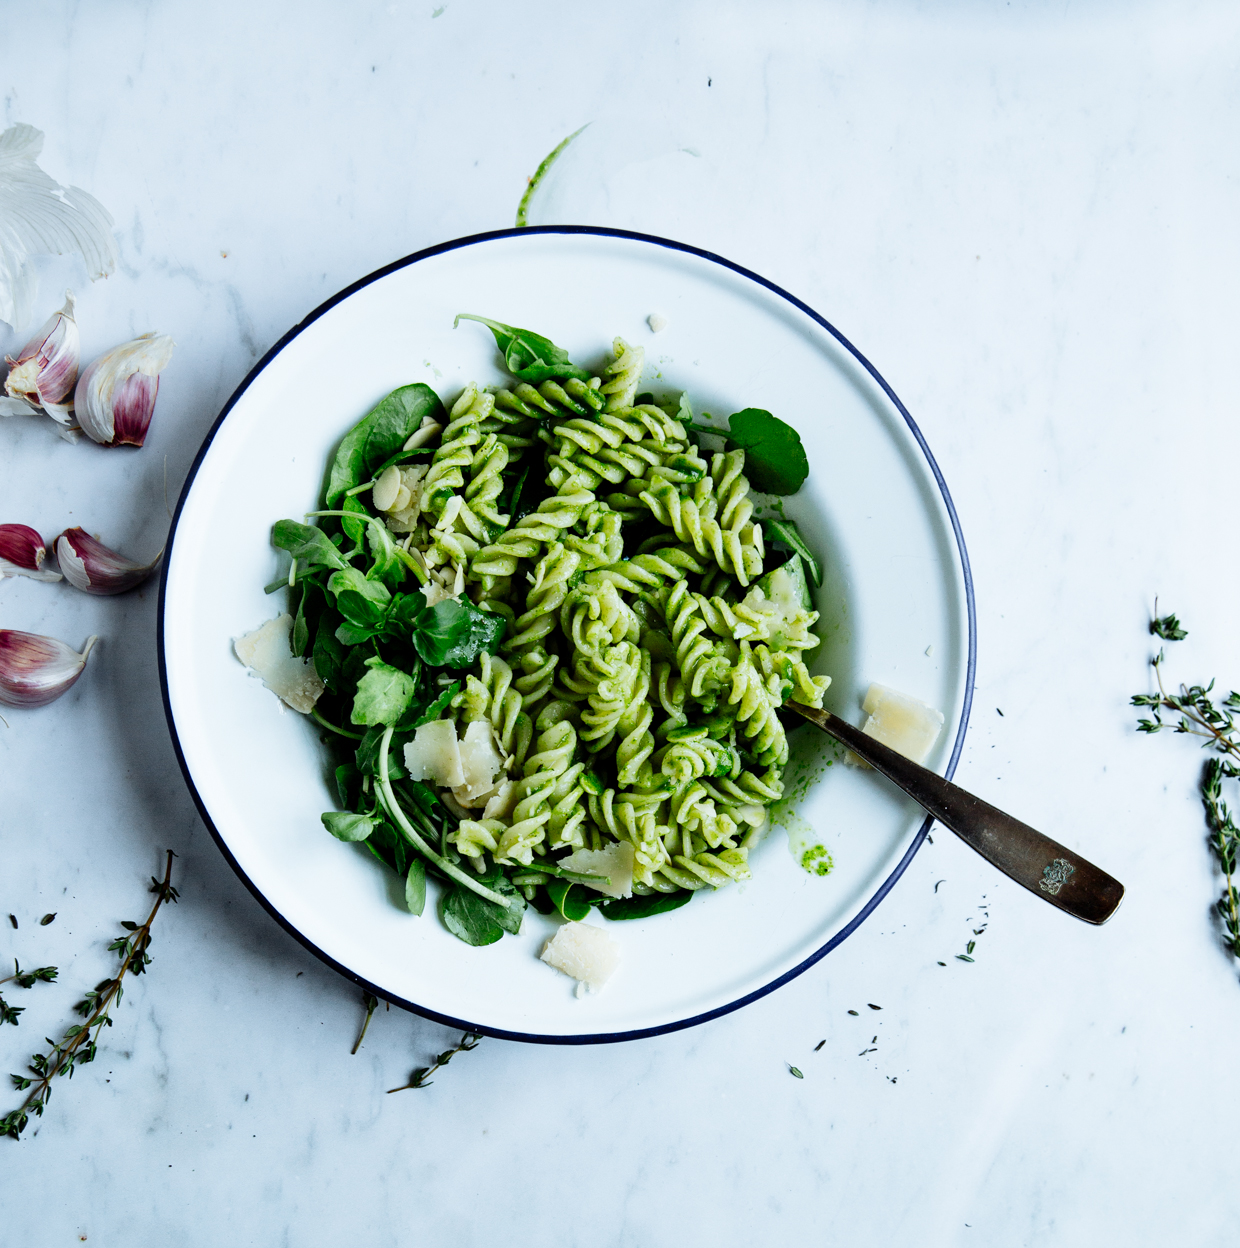 Green pasta salad with parsley & thyme vinaigrette